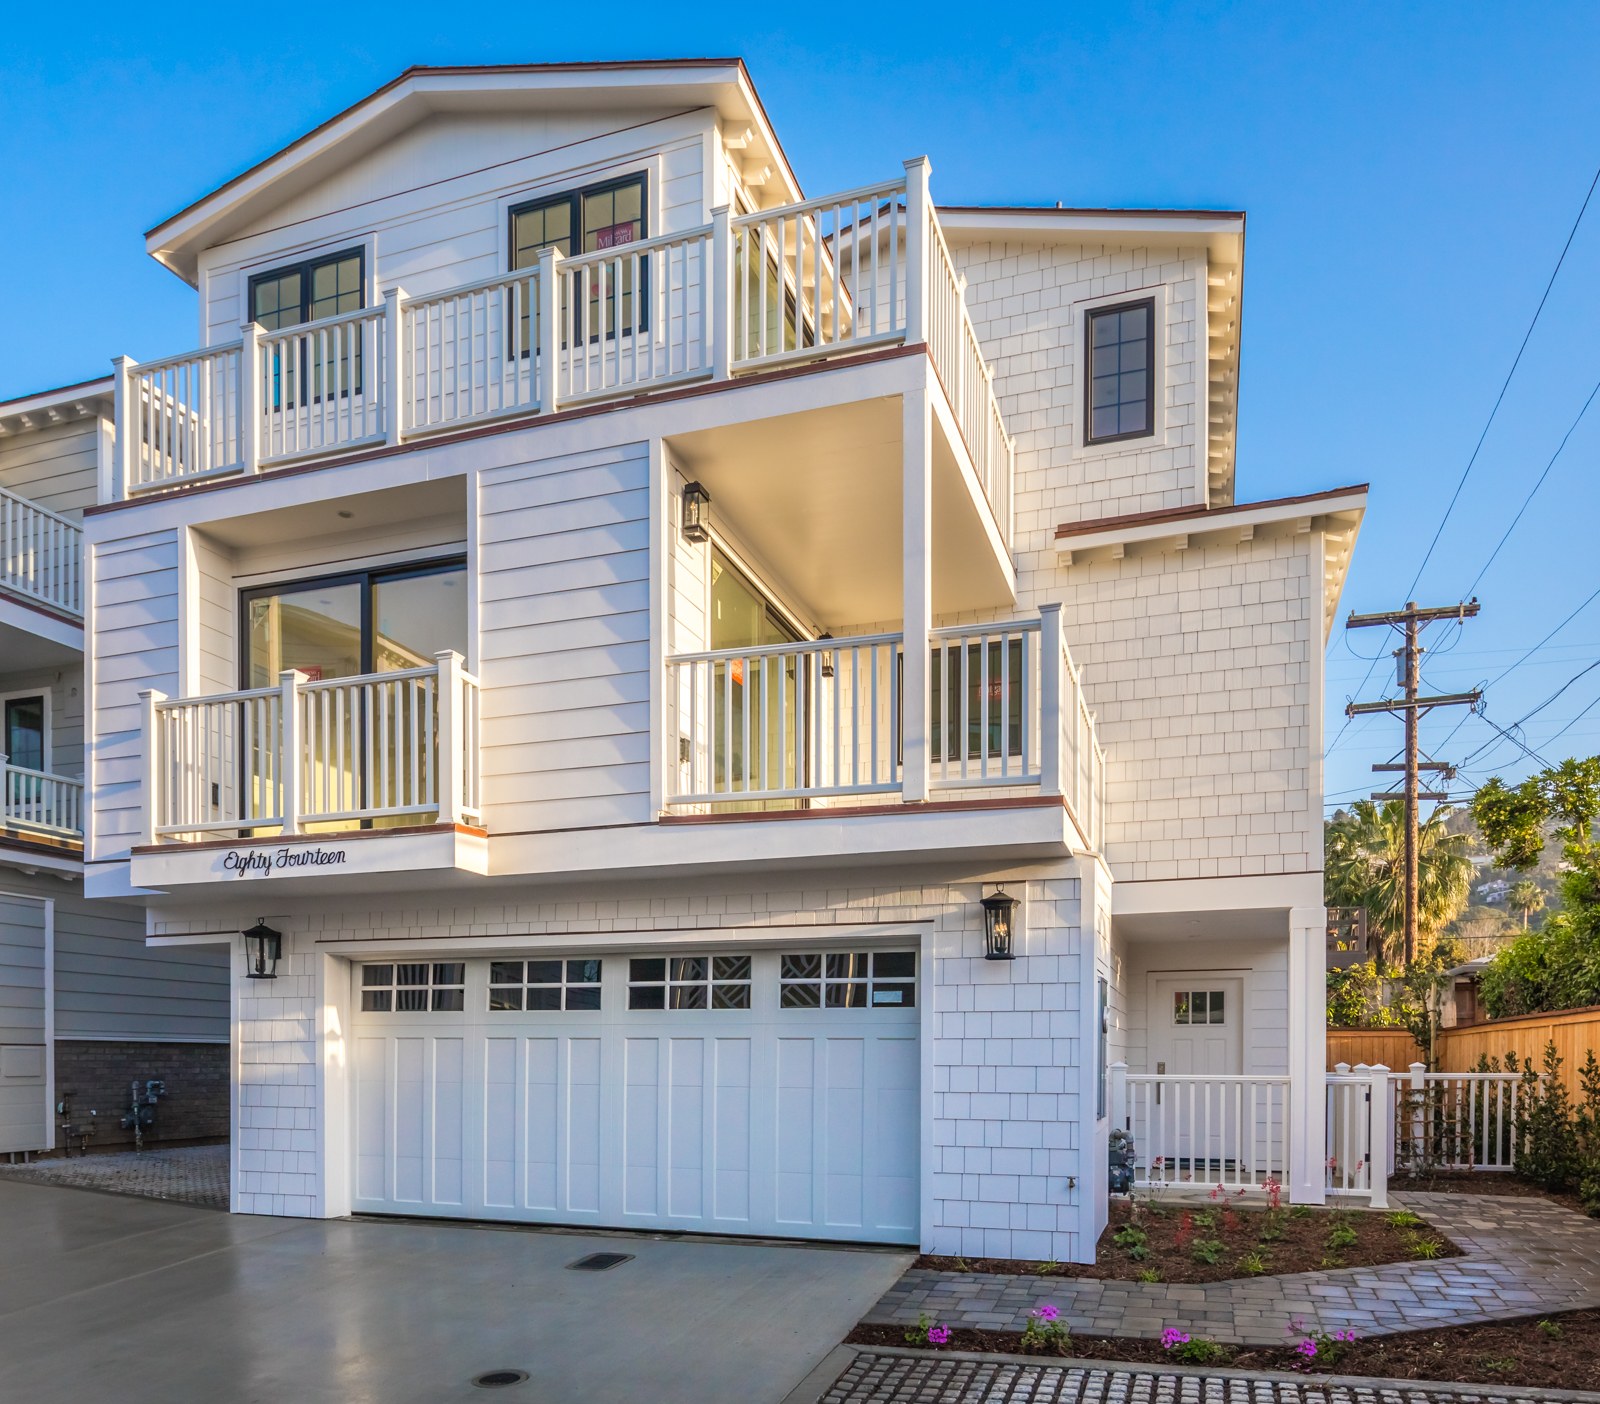 Main Photo: Residential for sale : 2 bedrooms : 8014 La Jolla Shores Drive in La Jolla